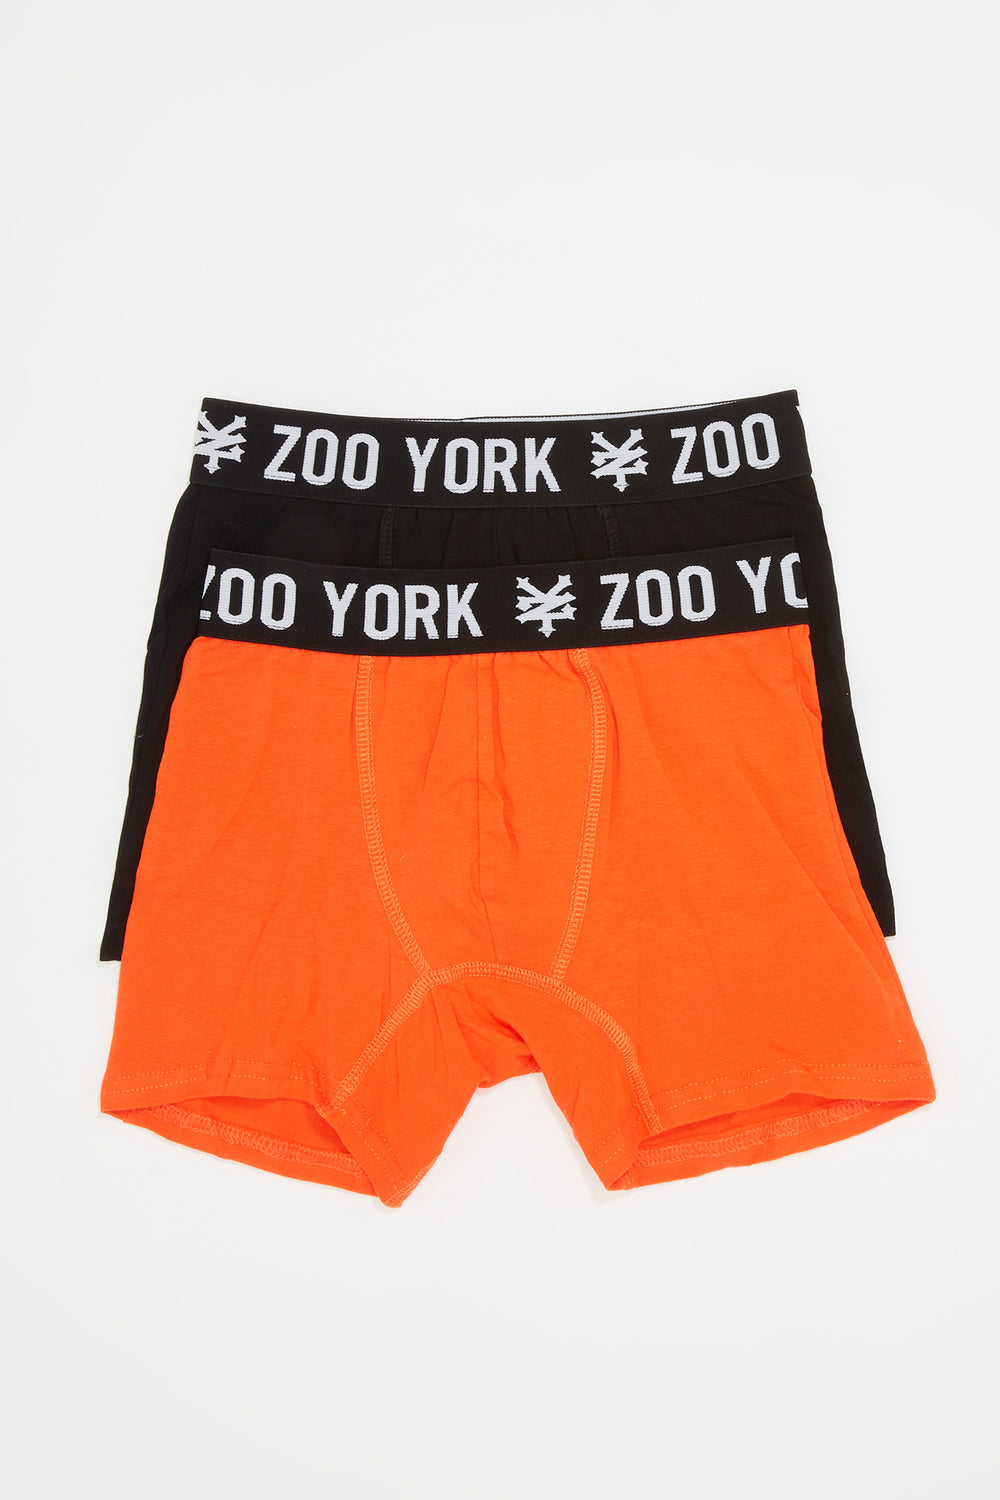 2 Paires de Boxer En Coton Zoo York Homme Orange